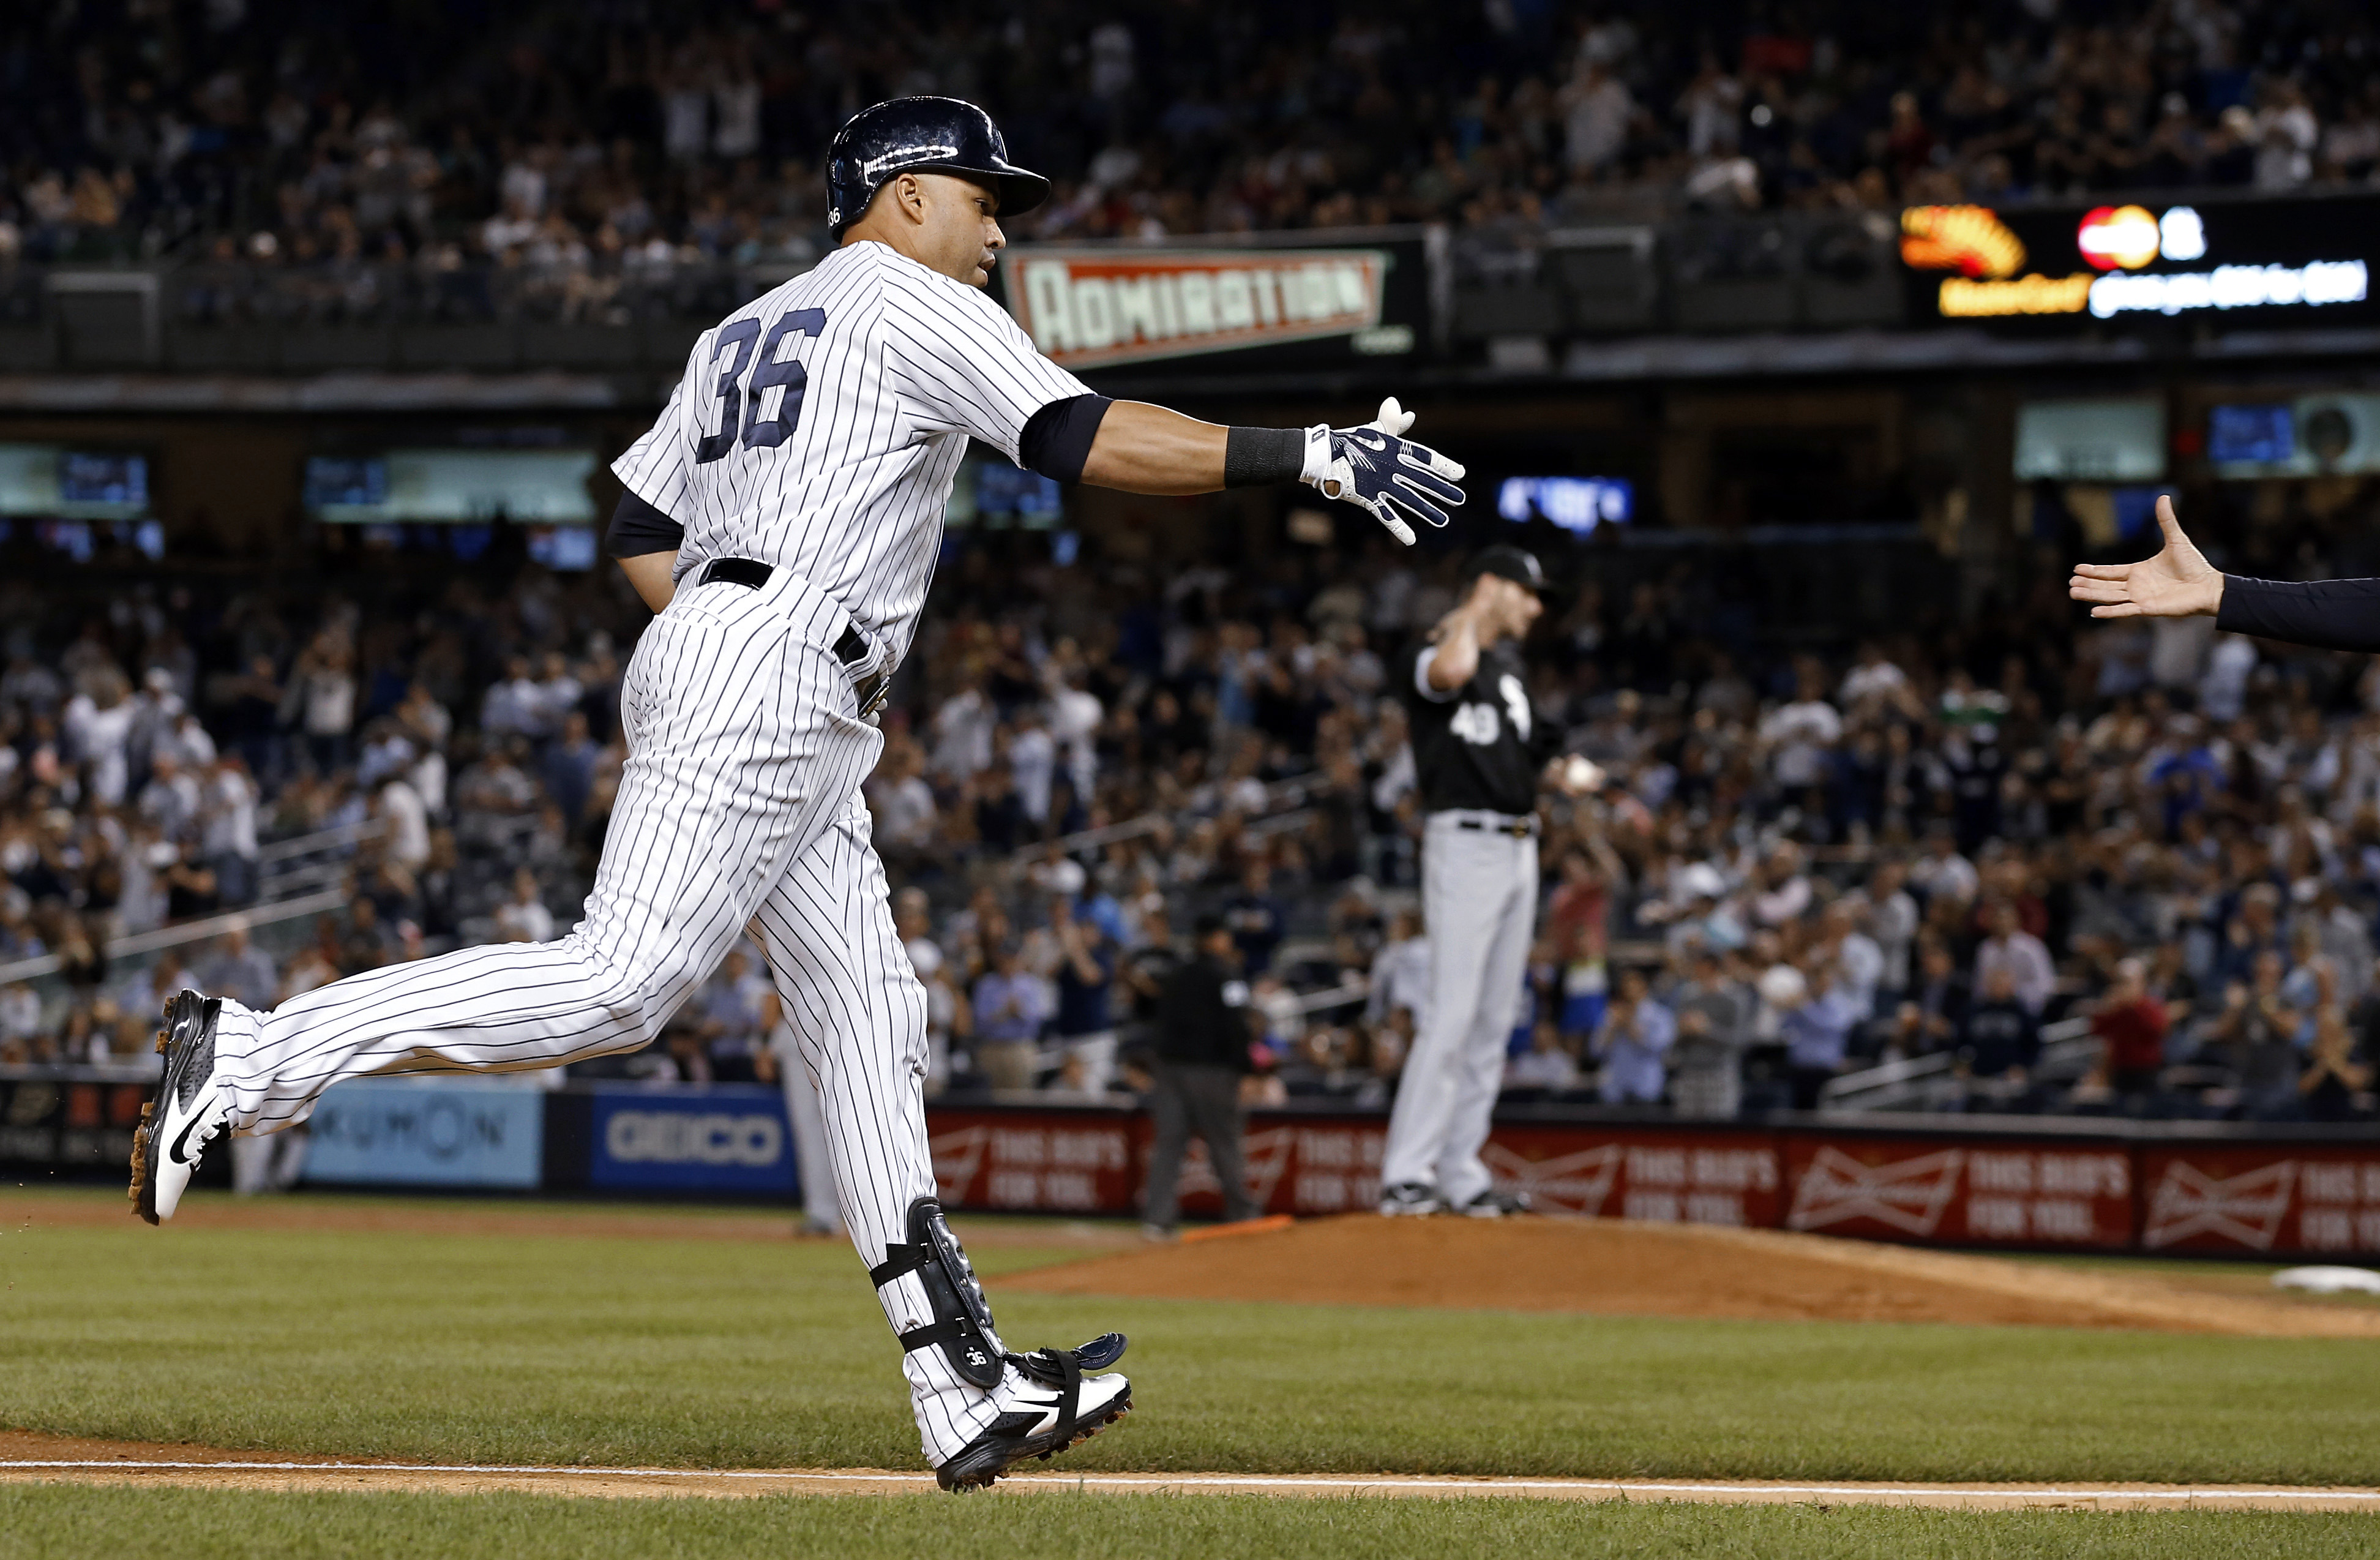 New York Yankees' Carlos Beltran rounds the bases after hitting a three-run home run off of Chicago White Sox starting pitcher Chris Sale during the third inning of a baseball game on Thursday, Sept. 24, 2015, in New York. (AP Photo/Adam Hunger)